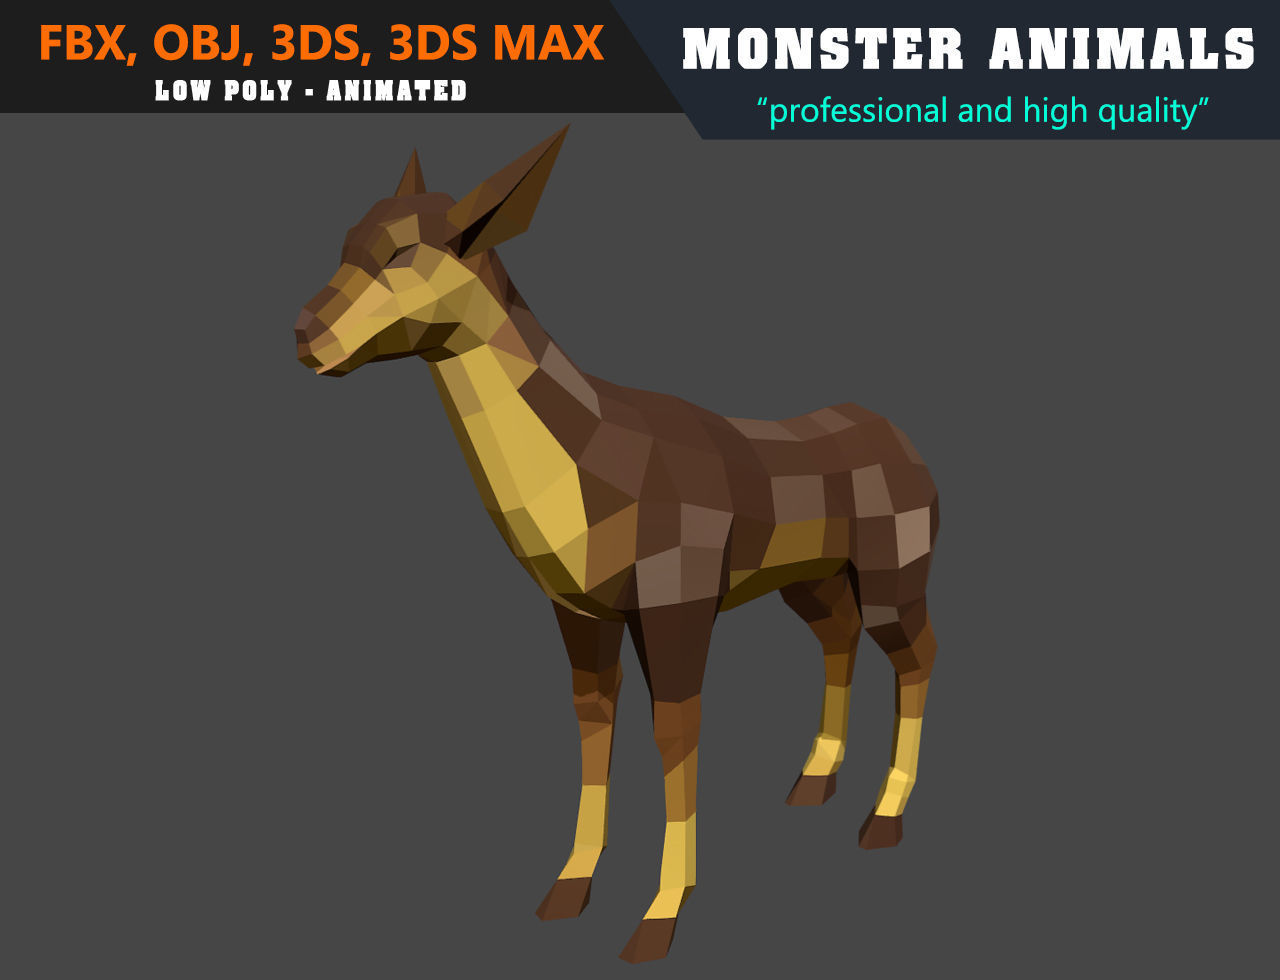 3d Models For Animation Low Poly Deer Cartoon 3d Model Animated Game Ready 3d Model